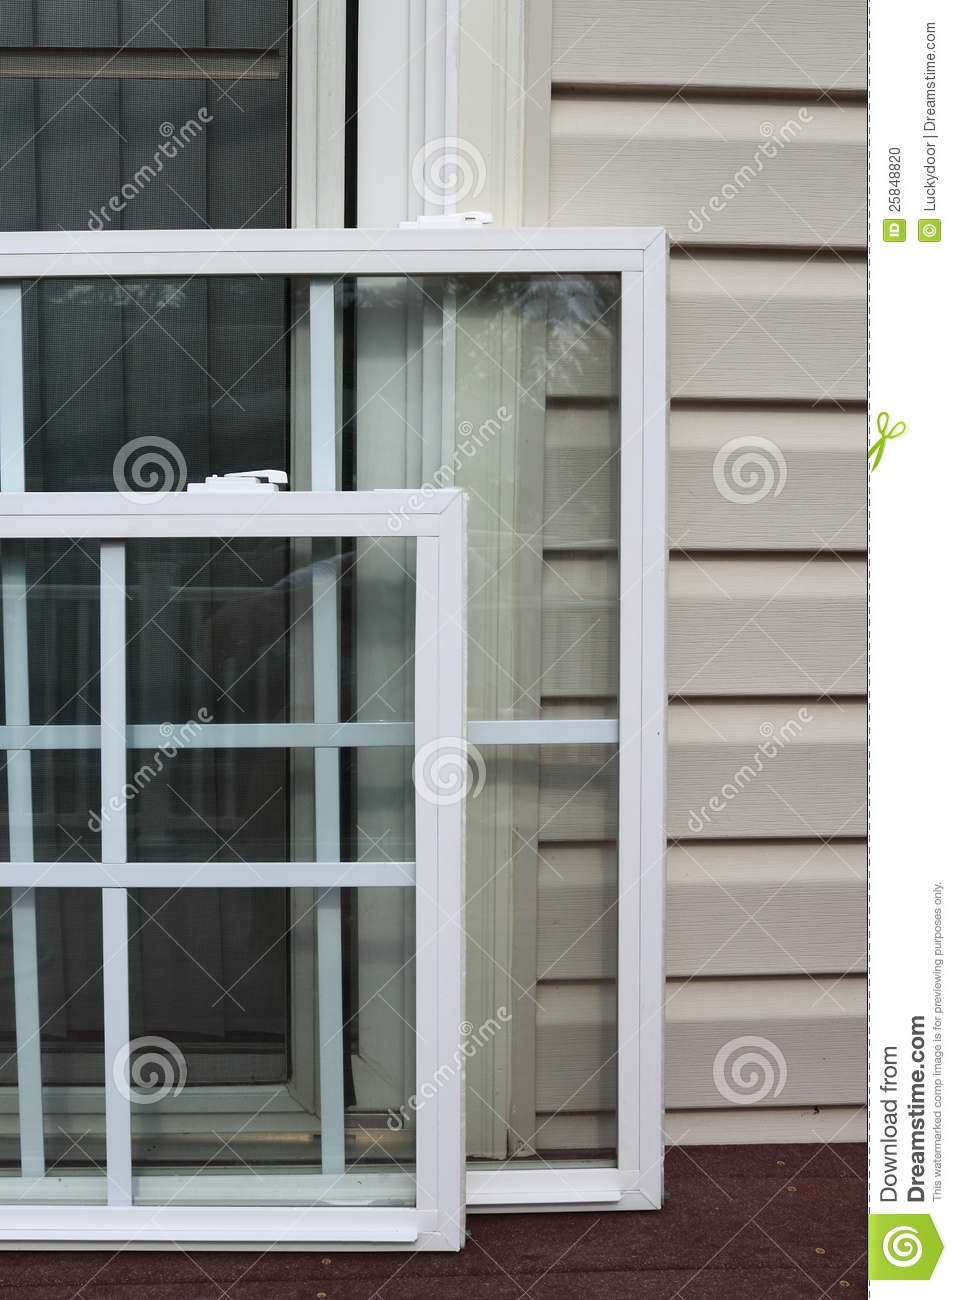 Energy efficient windows stock photo image 25848820 for Efficient windows